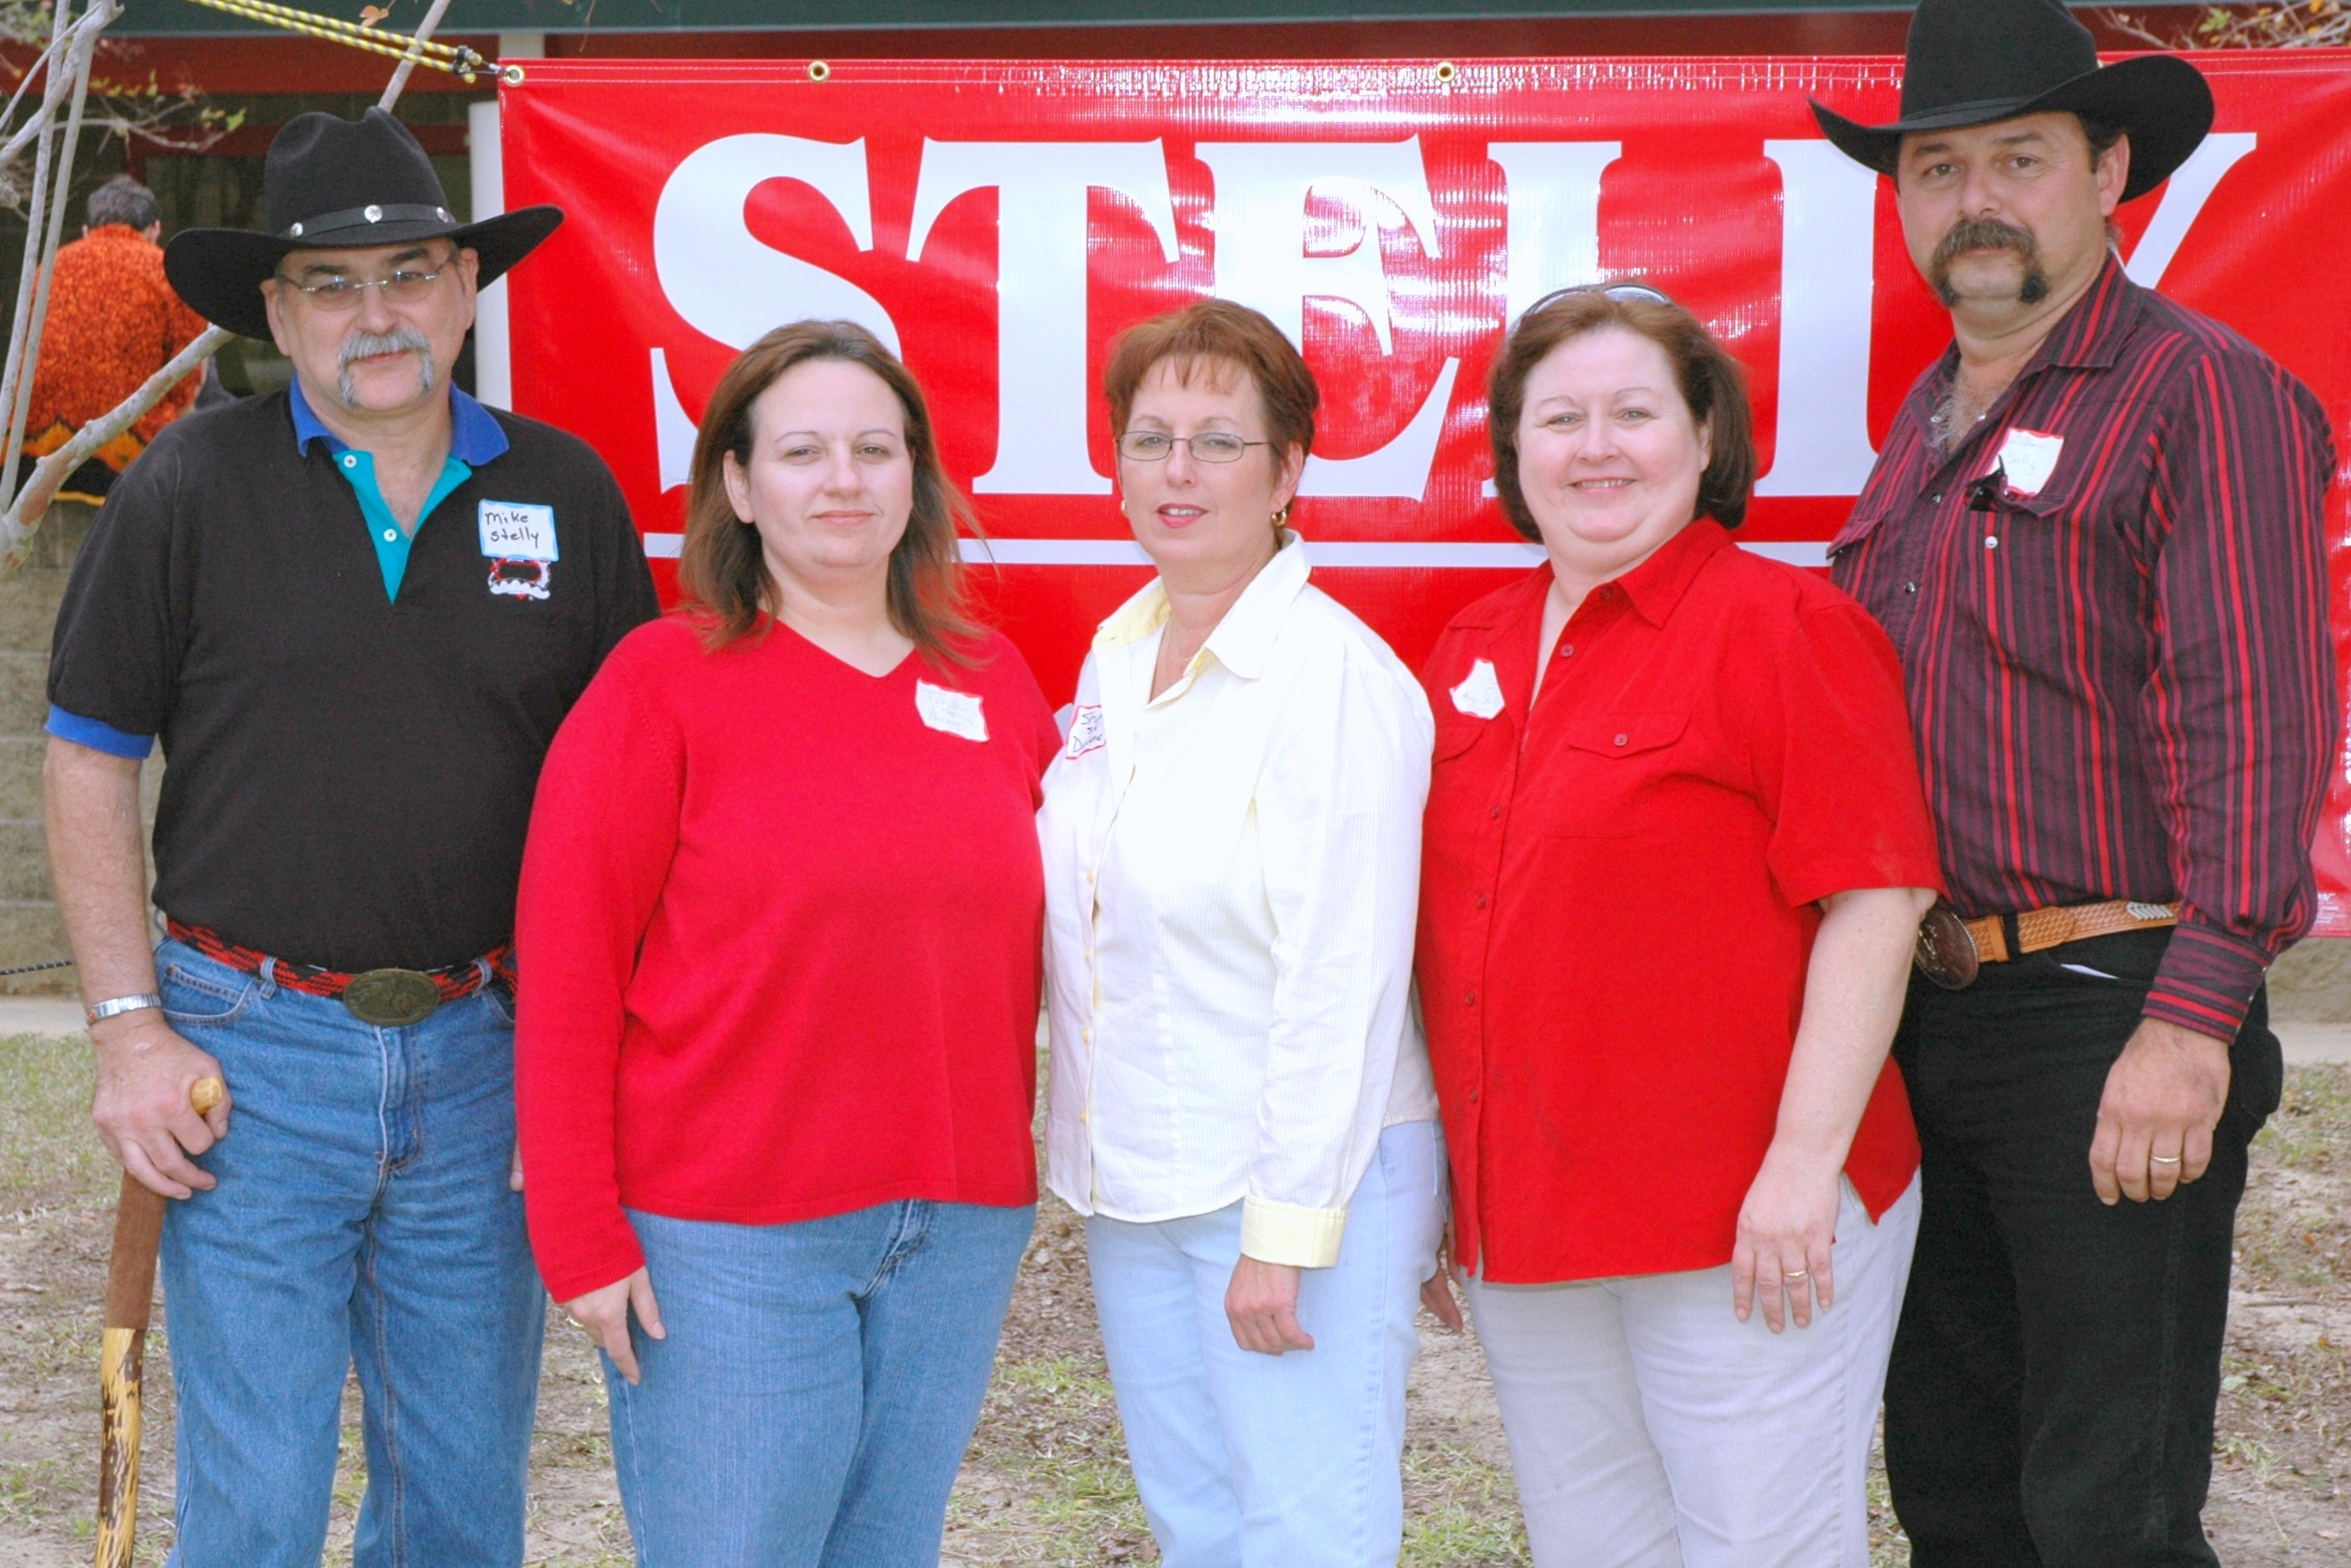 DSC_0048 Michael Stelly, Tina Stelly Mayo, Sharon Stelly Dufrene, Kathy Stelly Prejean, William Stelly